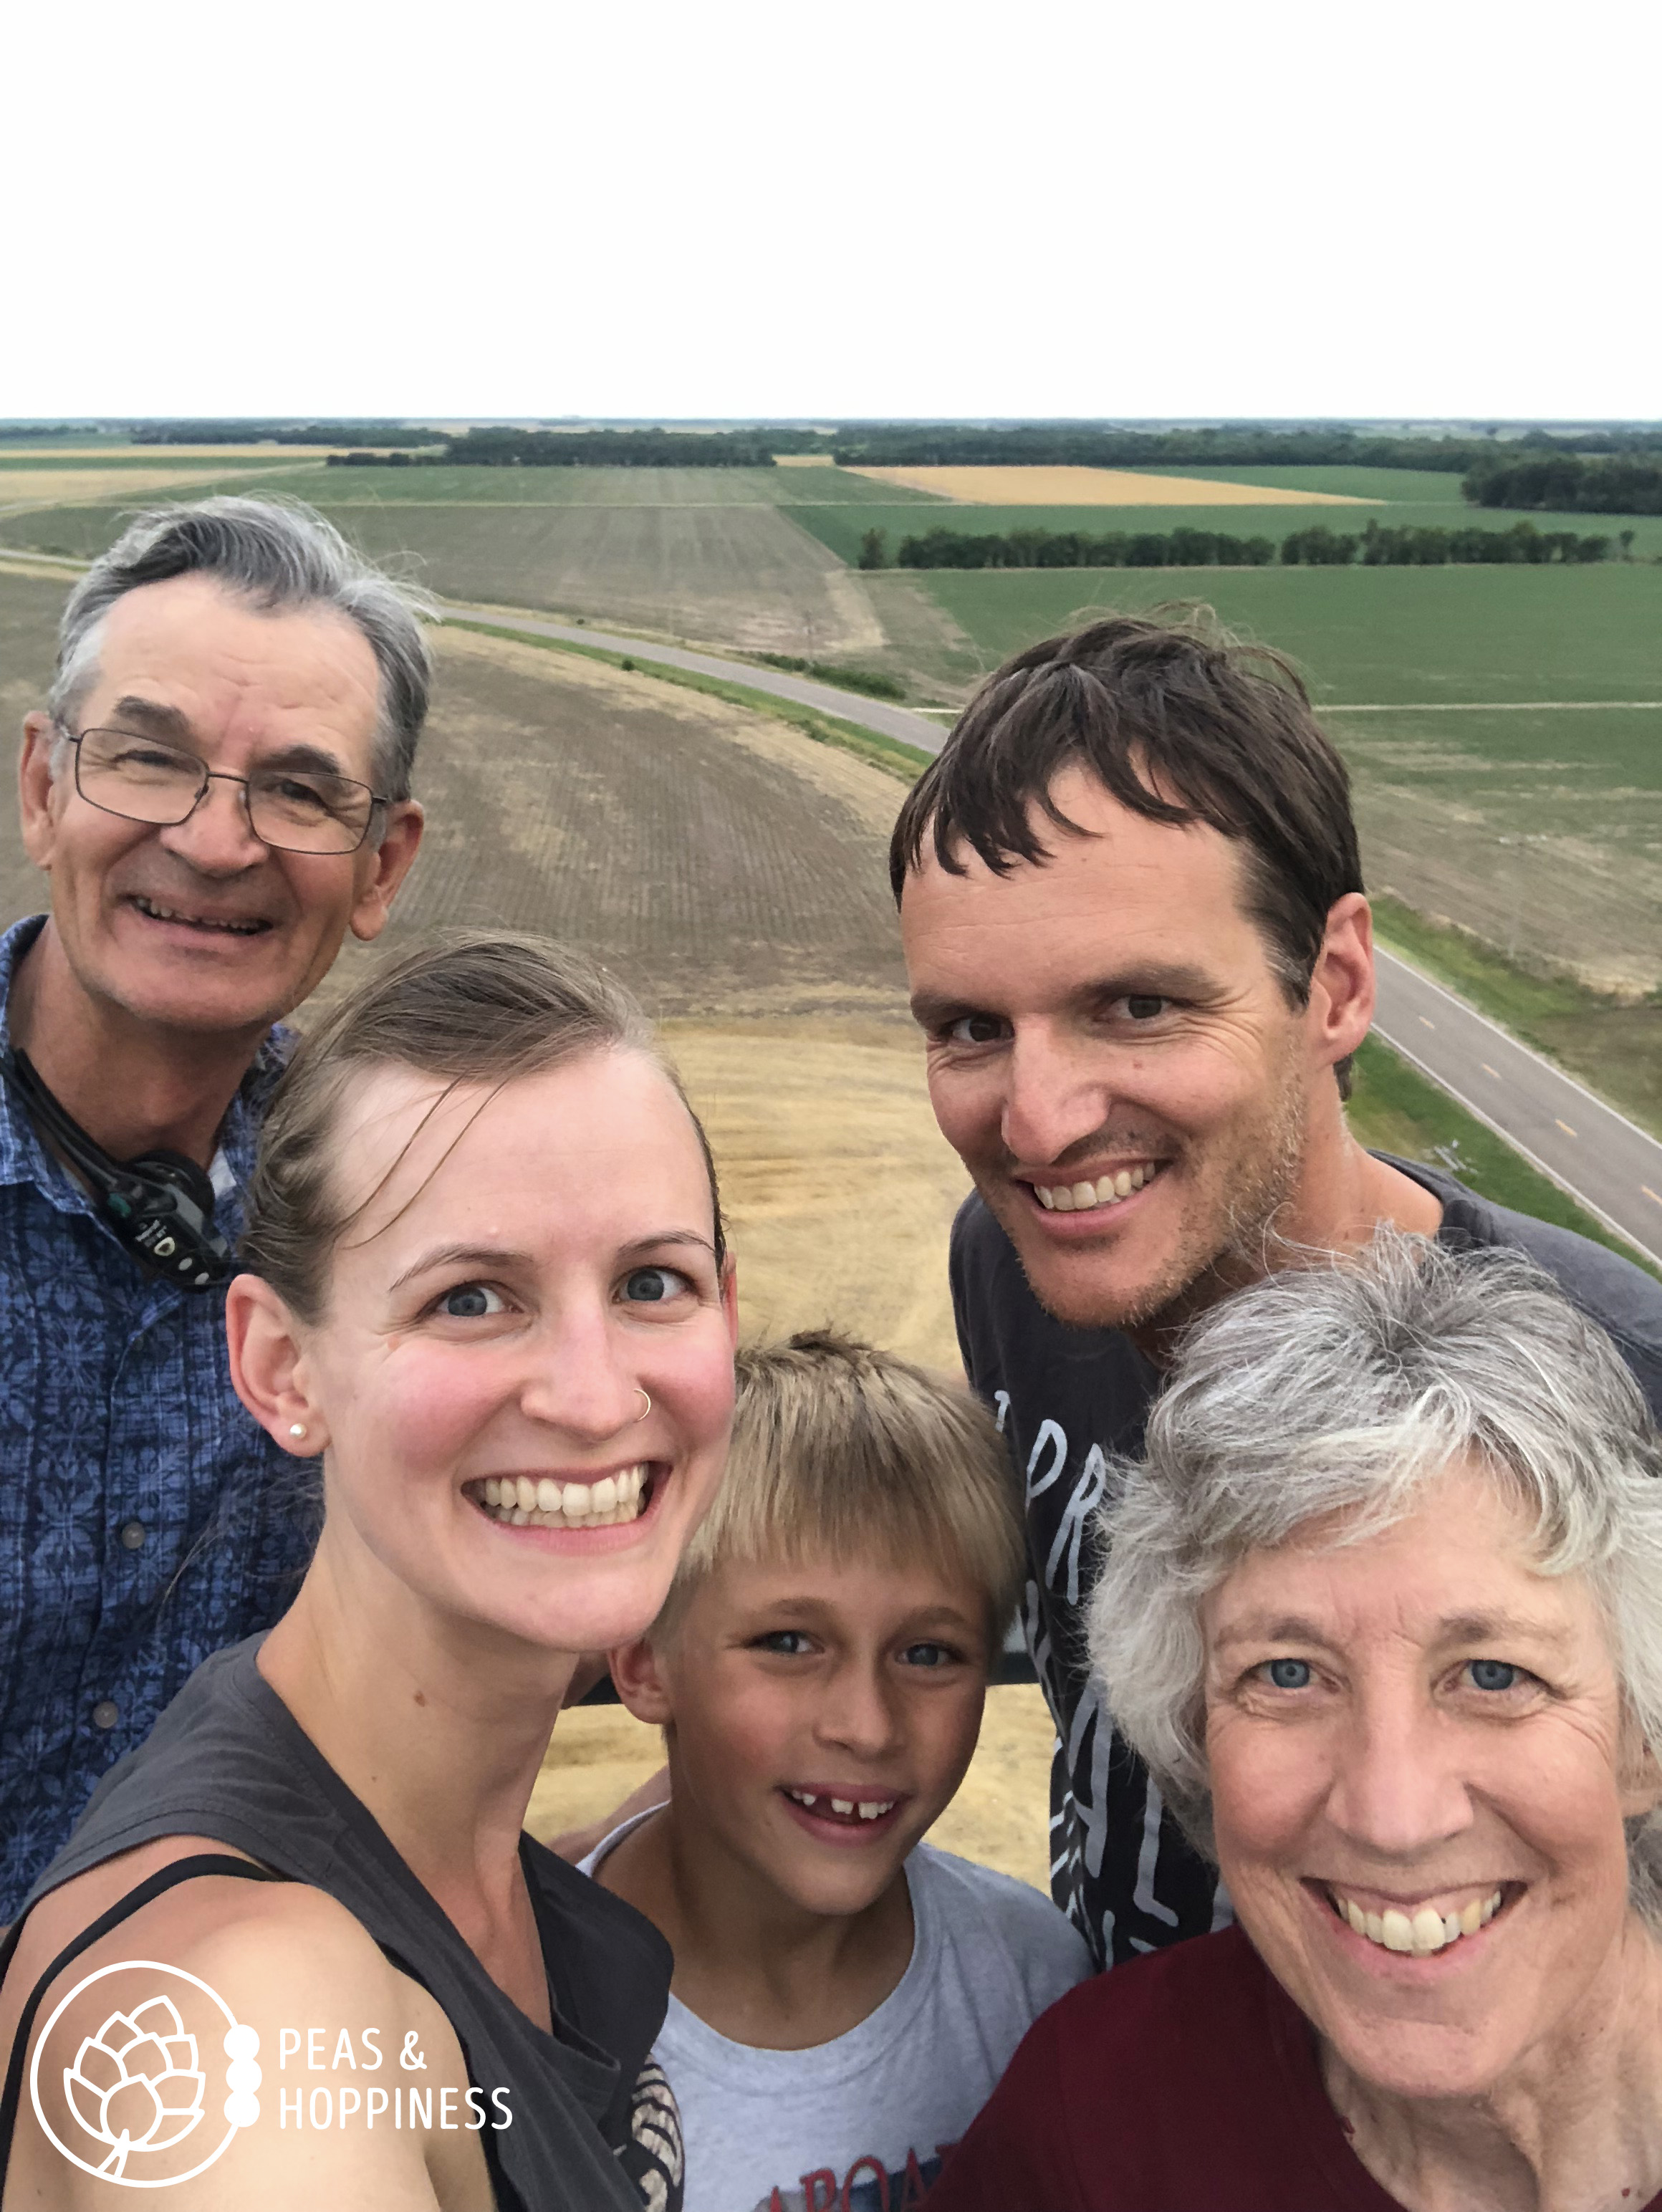 Our kind of entertainment: climbing to the top of my parents' grain-handling facility with the family!